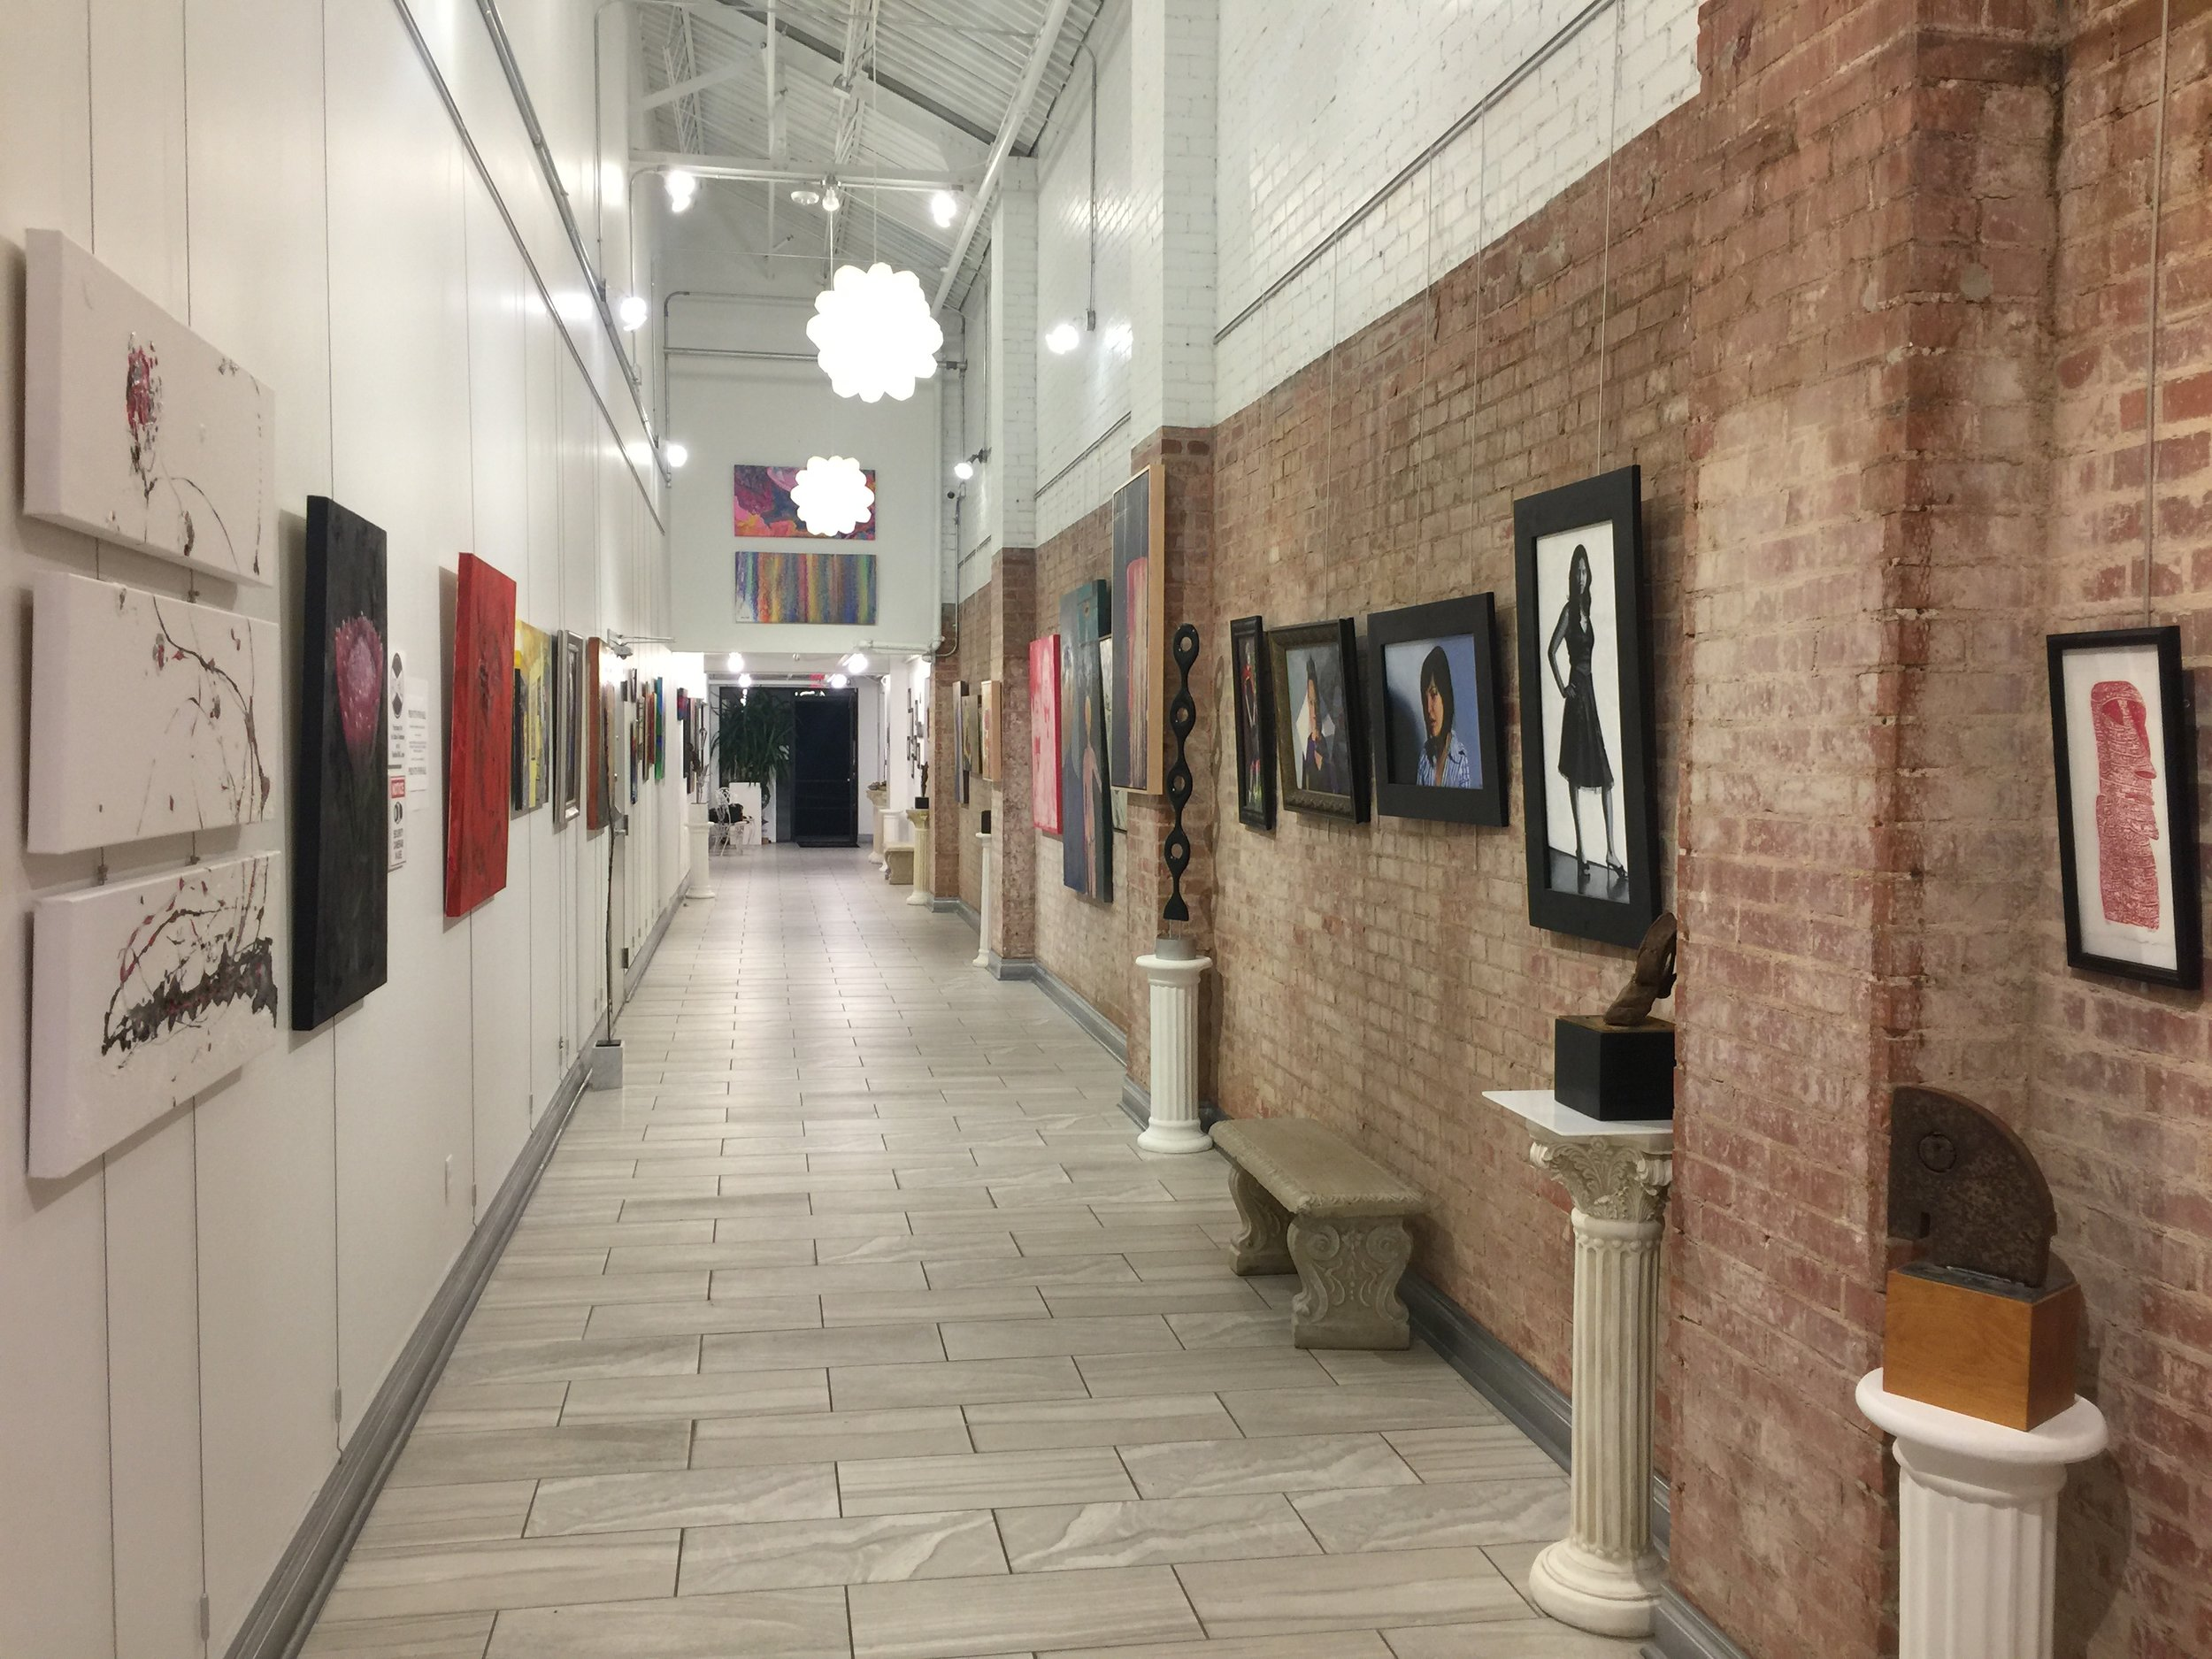 Installation view facing North, with painting by Teddi Fokas on the left and work by Kjelshus Collins, Ryan Pack, and Michael Hanes on the right